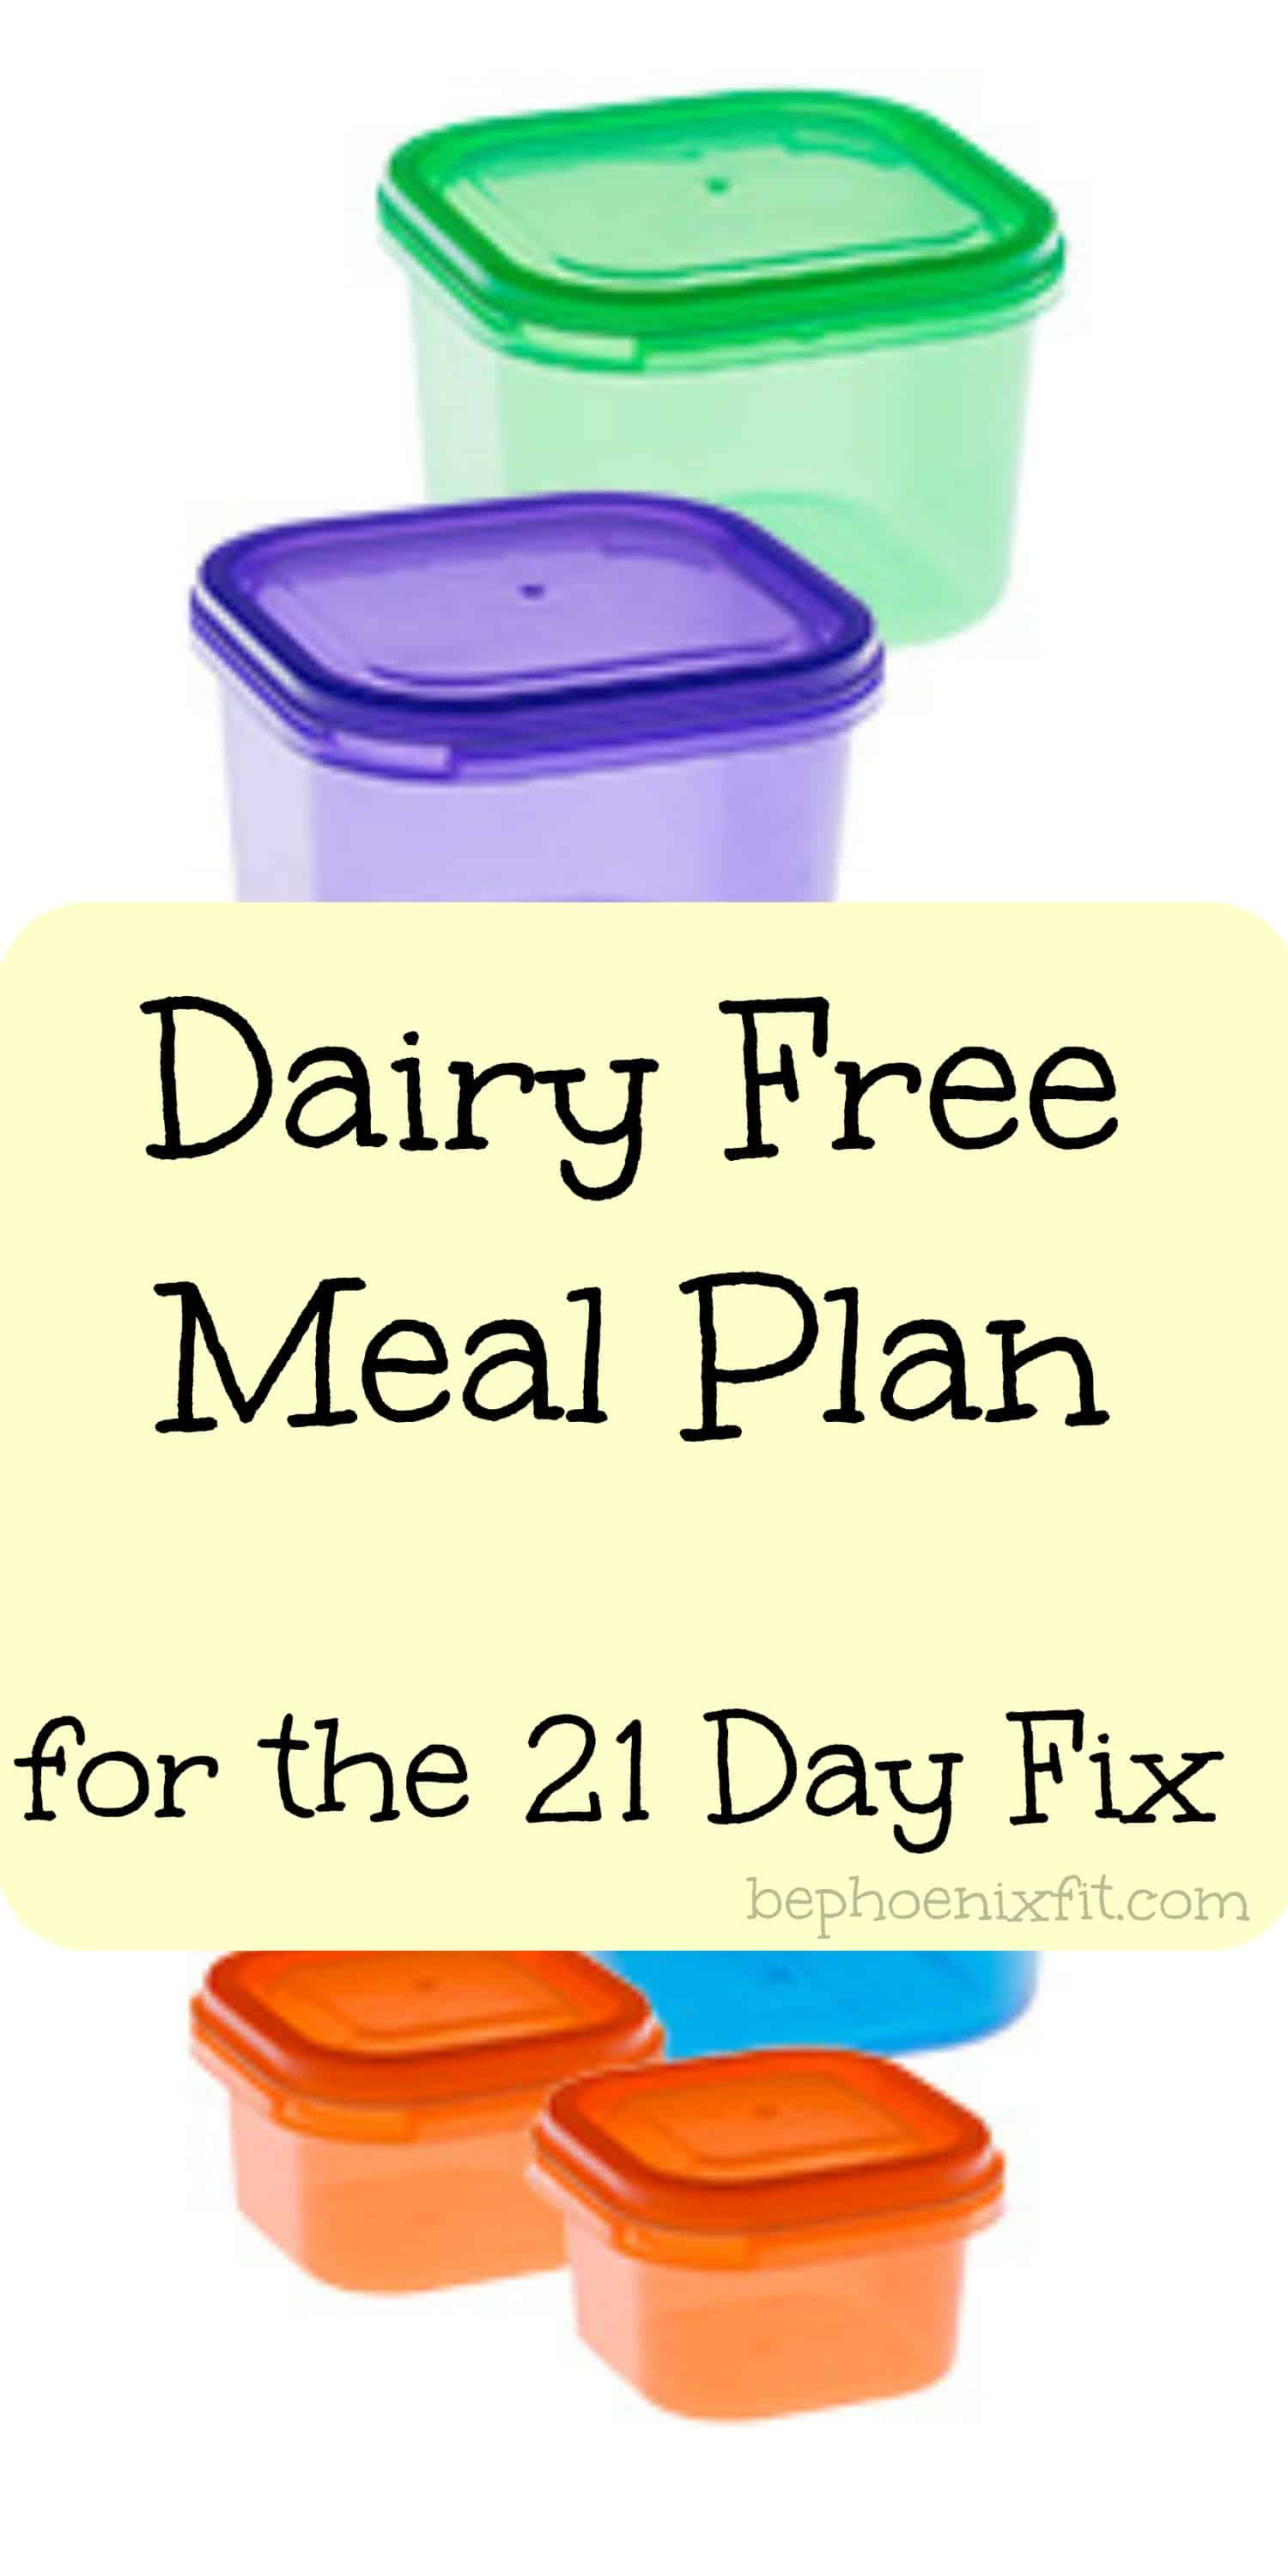 21 Day Fix – Dairy Free Meal Plan